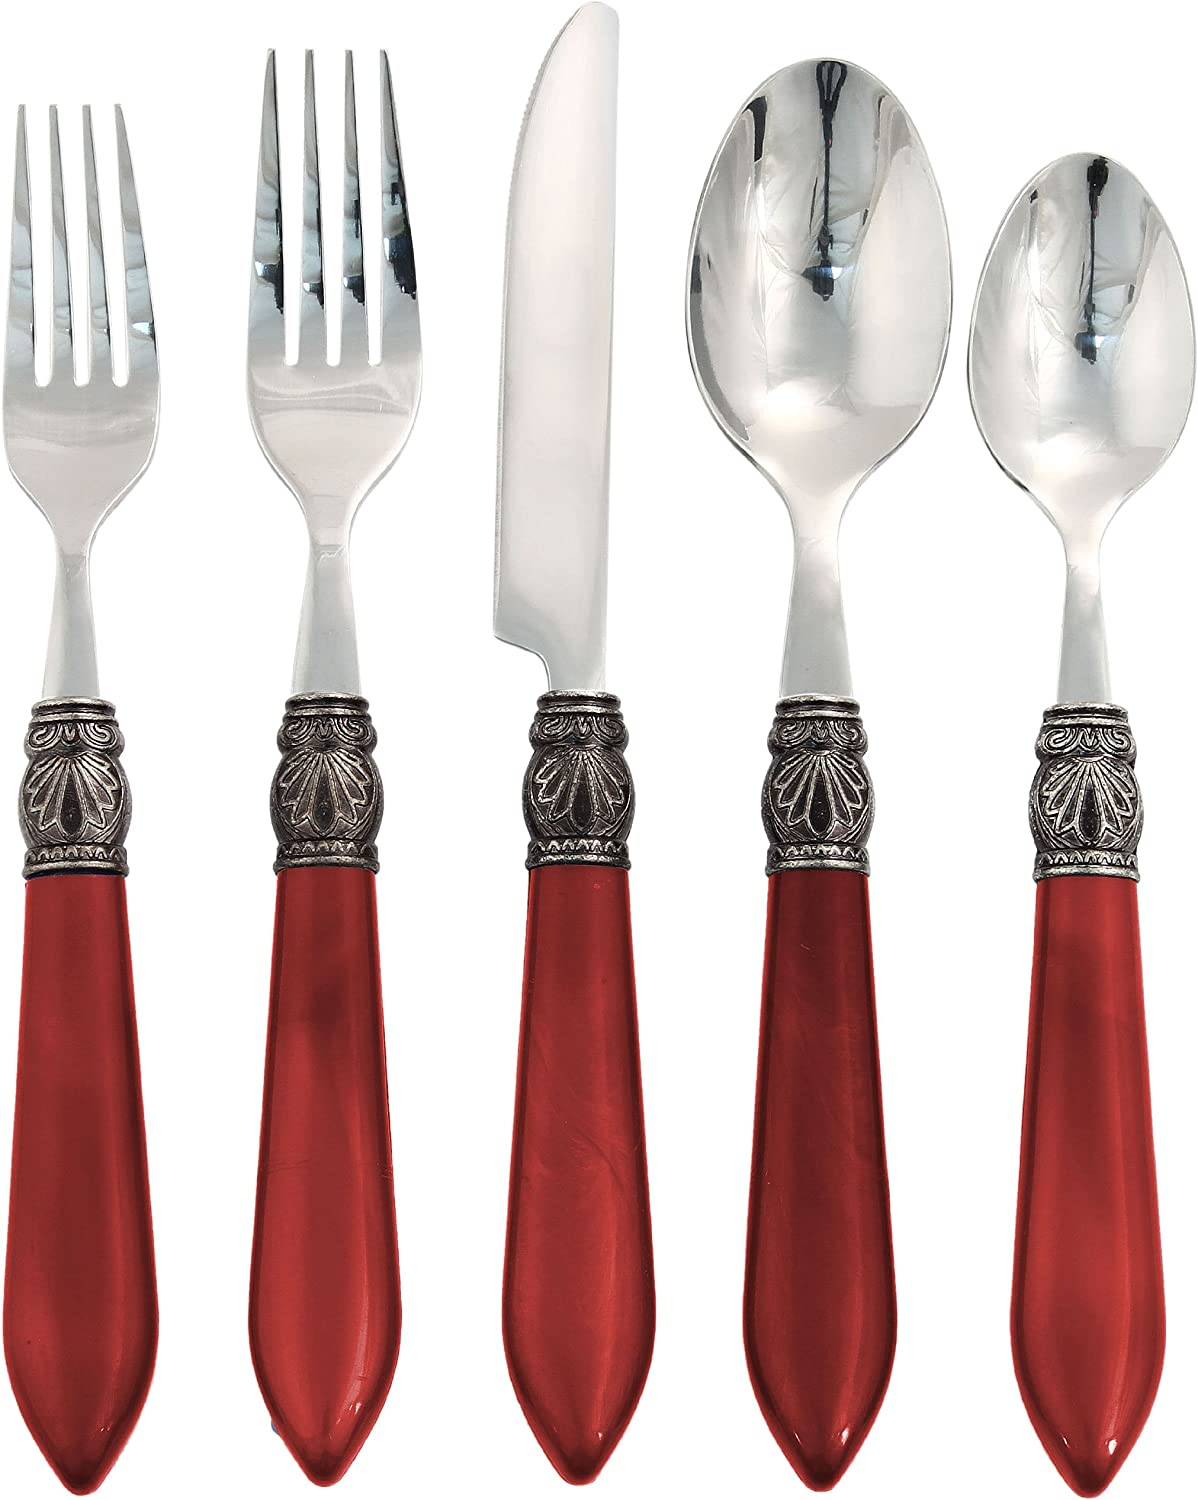 Argent by Hampton Forge, Sophia Red, 20 Piece Flatware Set